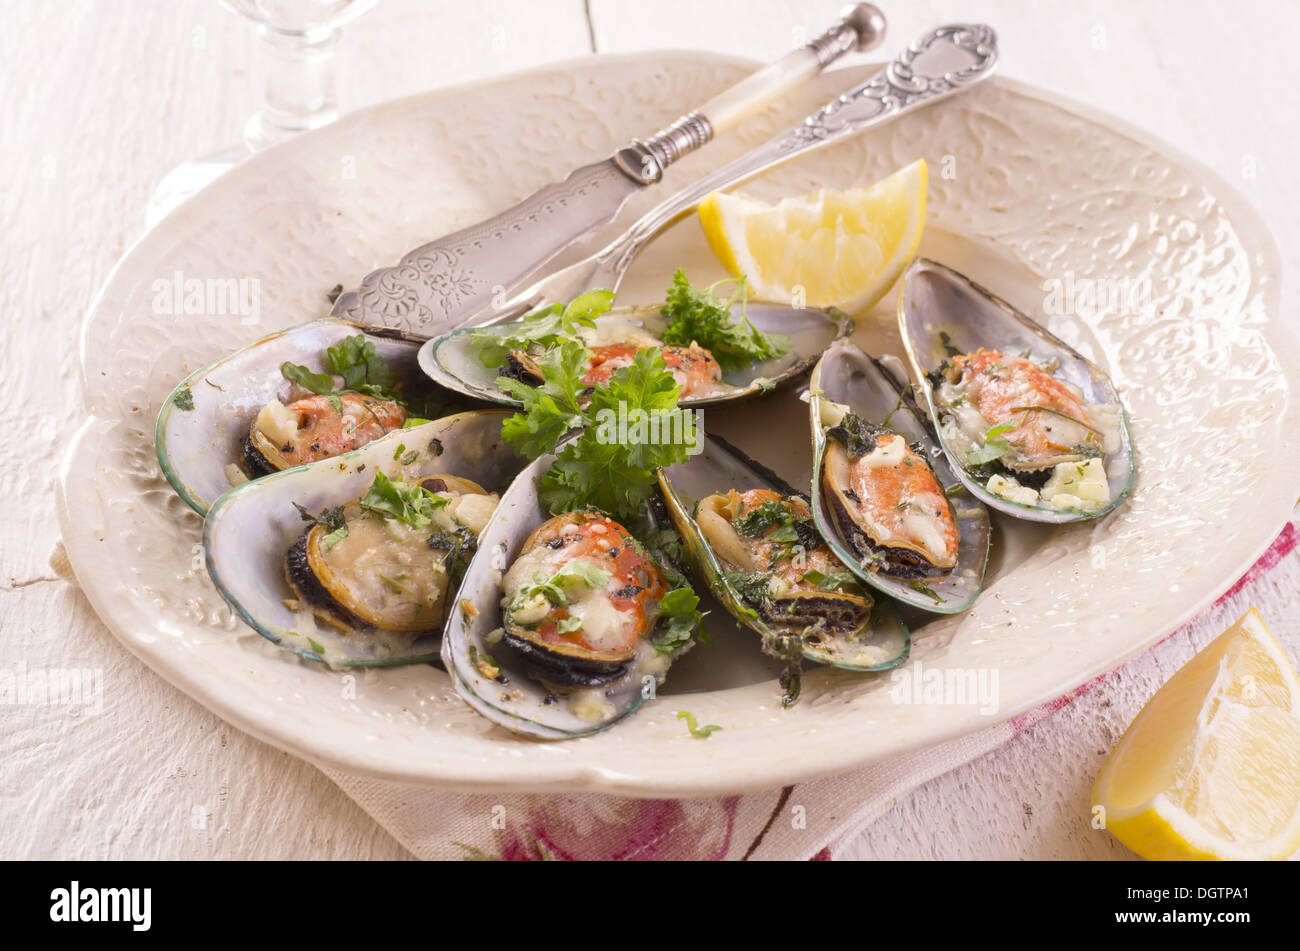 mussels bakes with permasan - Stock Image